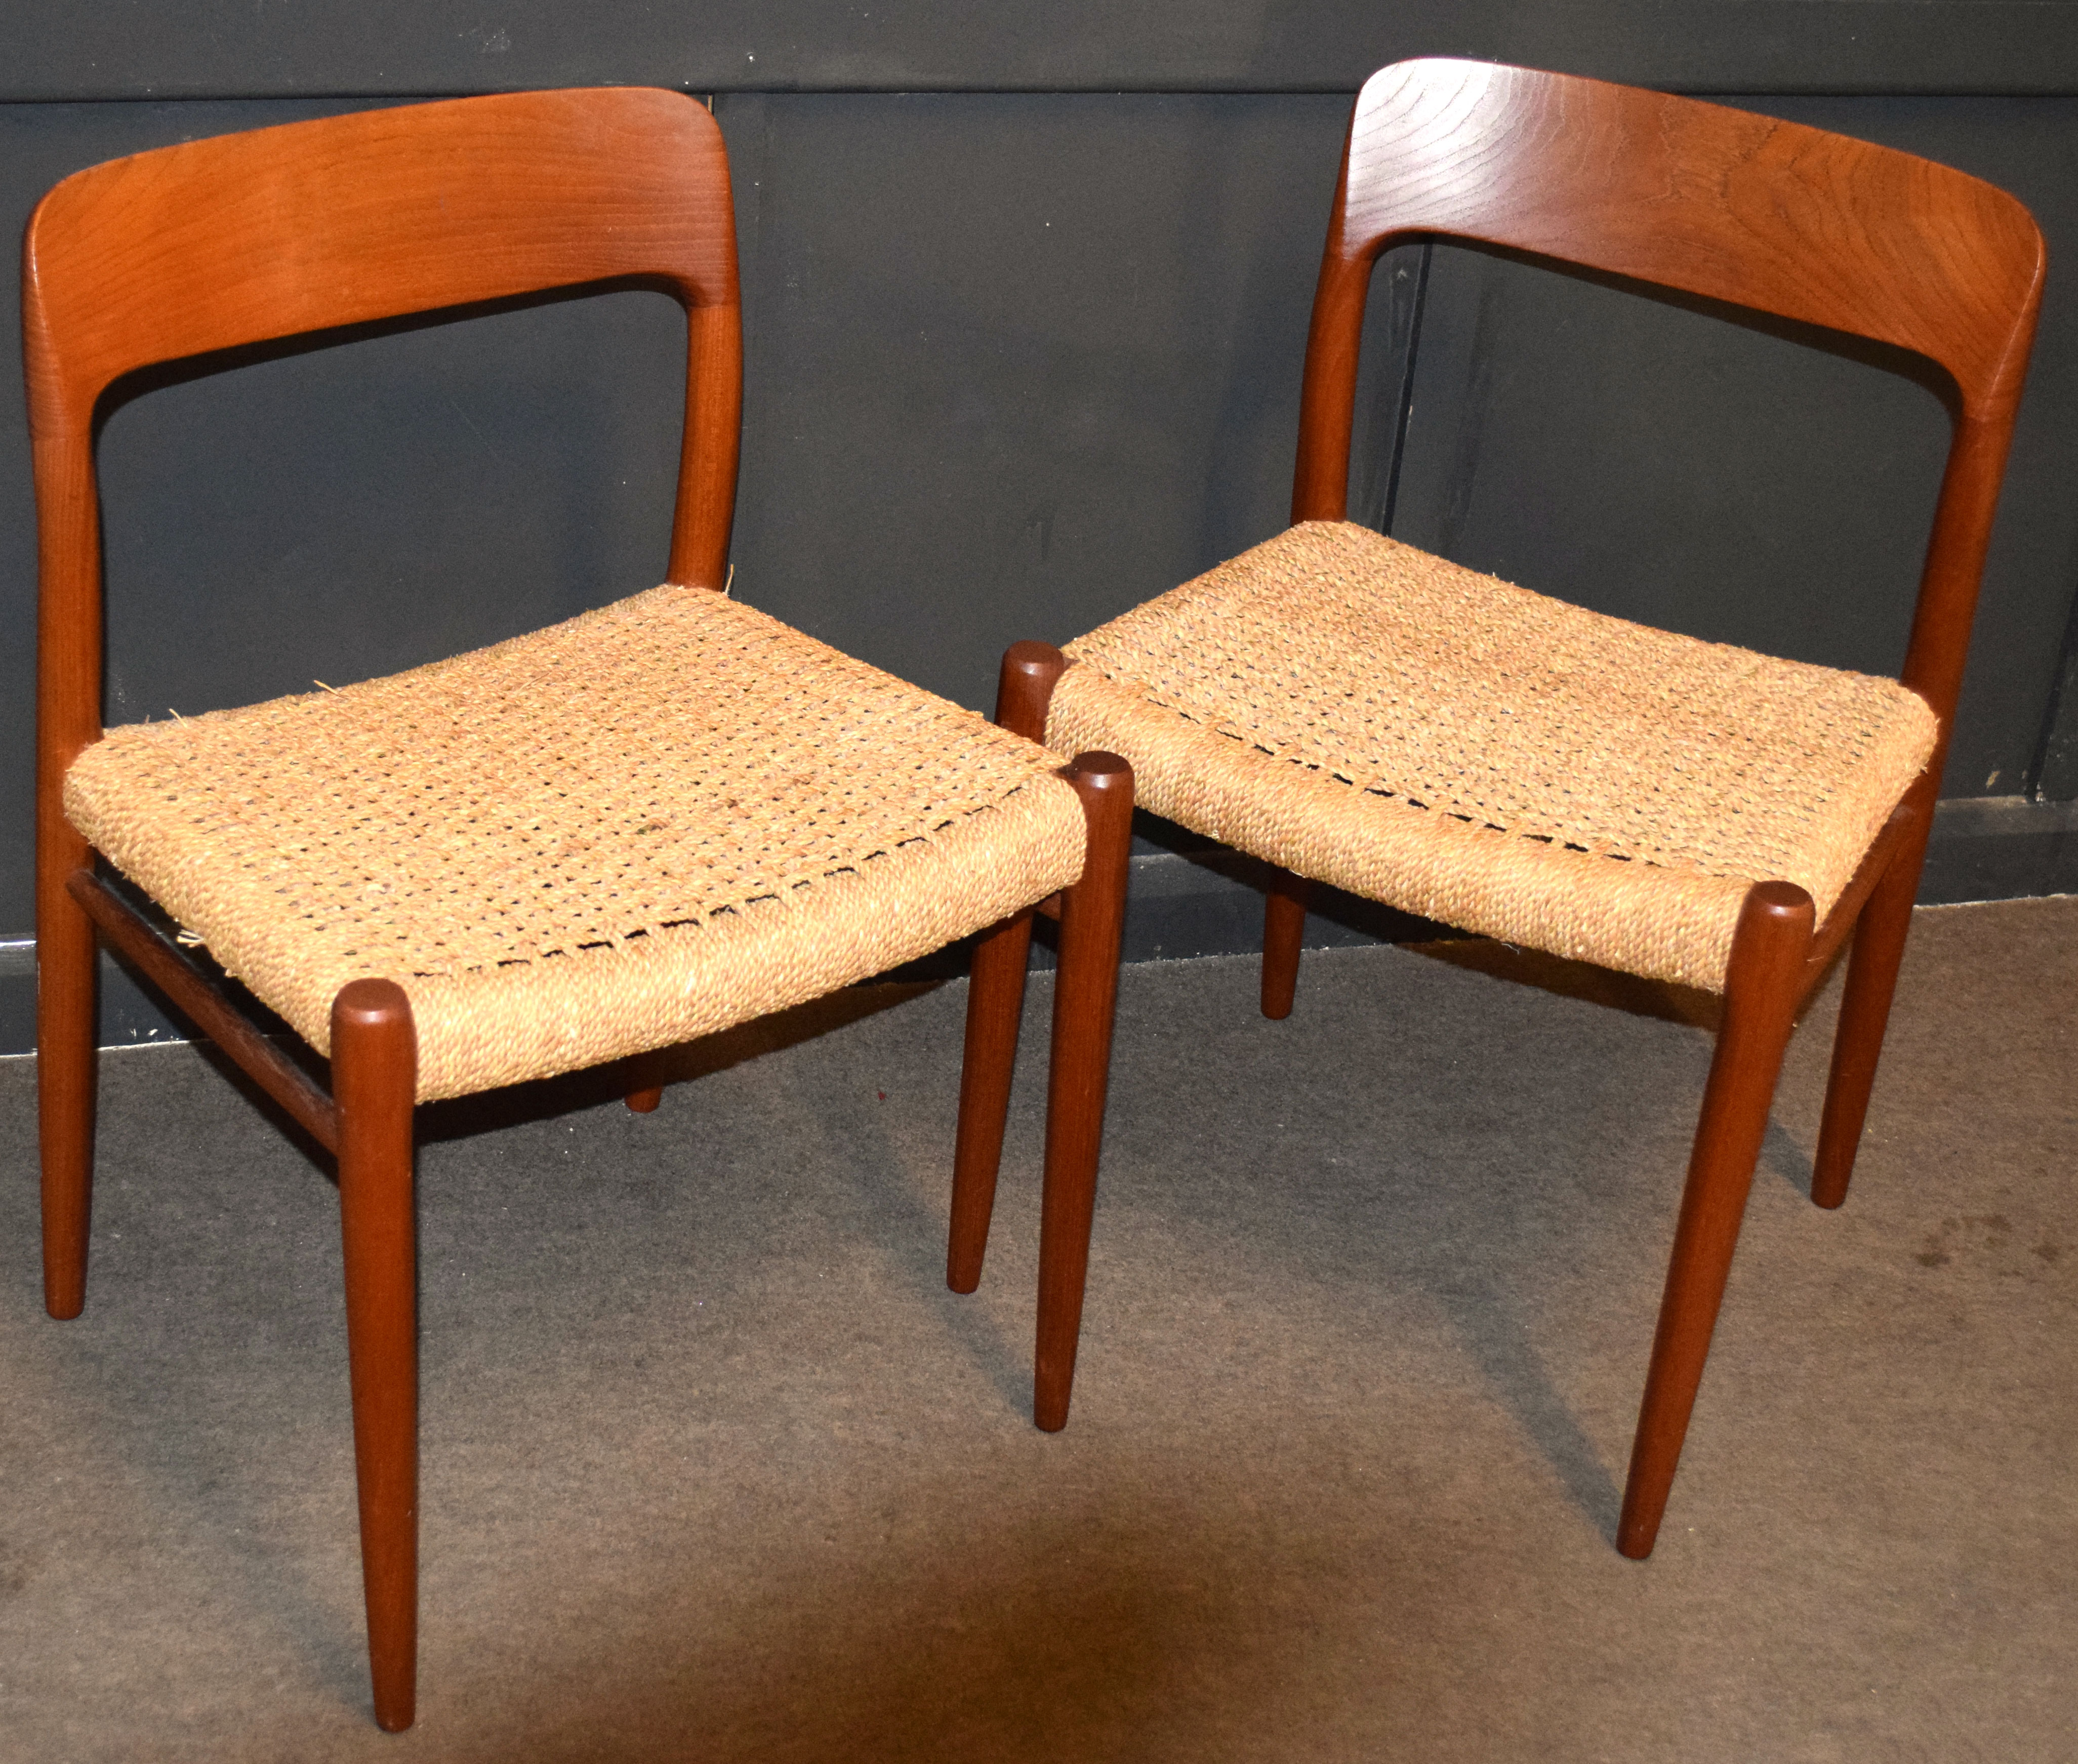 Niels Moller for J L Moller, set of four Danish teak dining chairs with string seats, chairs stamped - Image 3 of 5